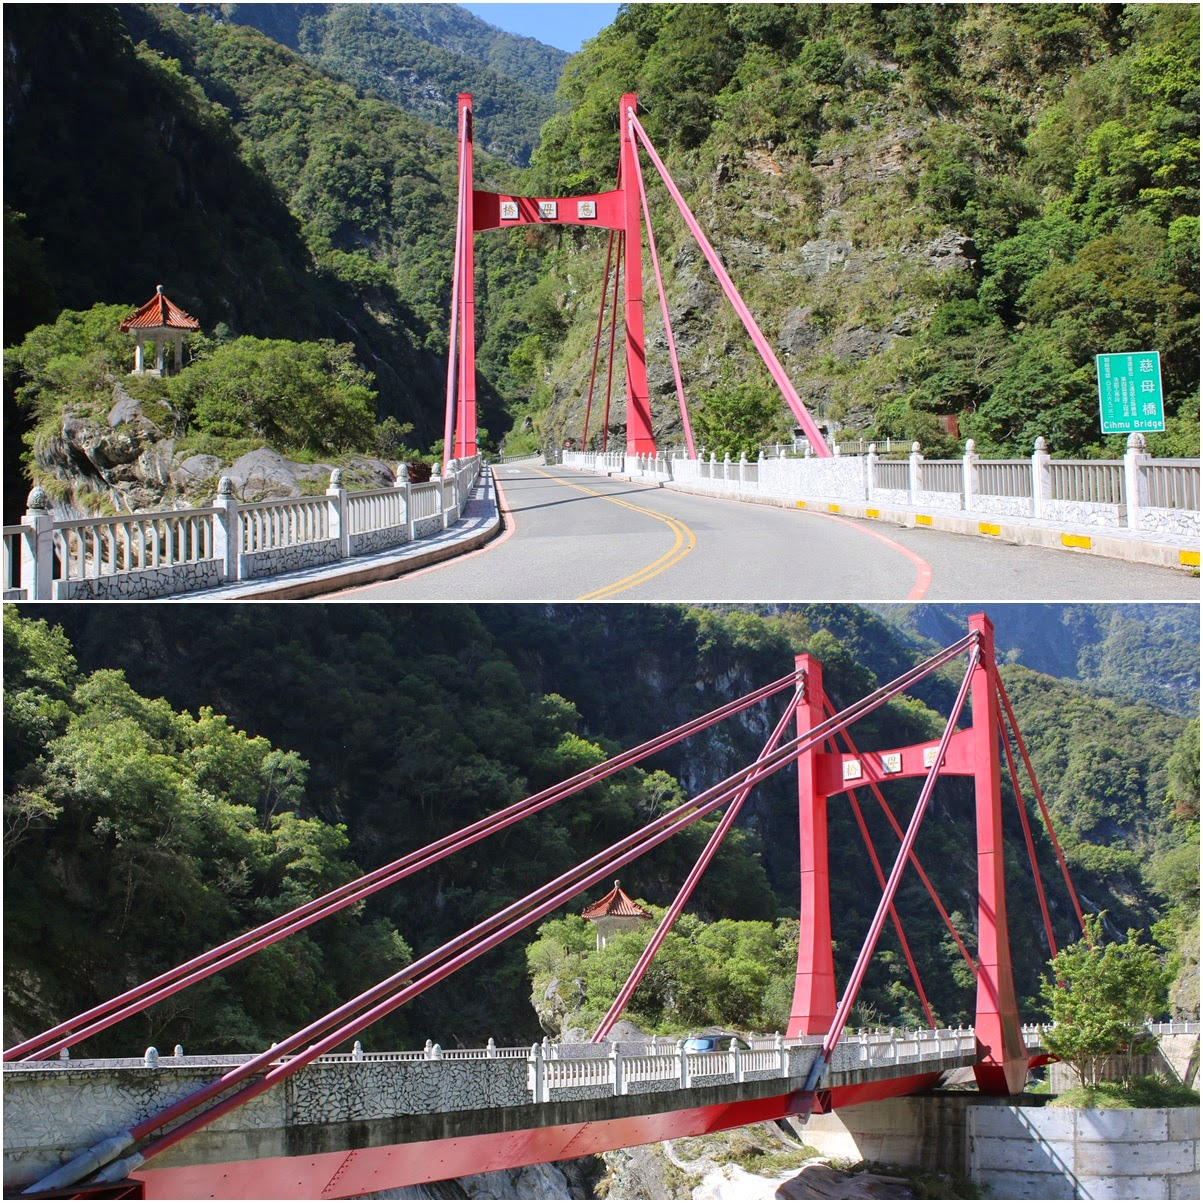 Cimu Bridge (Motherly Devotion Bridge) is an H-Shape hanging marble bridge which was built by President Chiang Jing-guo in memory of his mother at Taroko Gorge in Taiwan